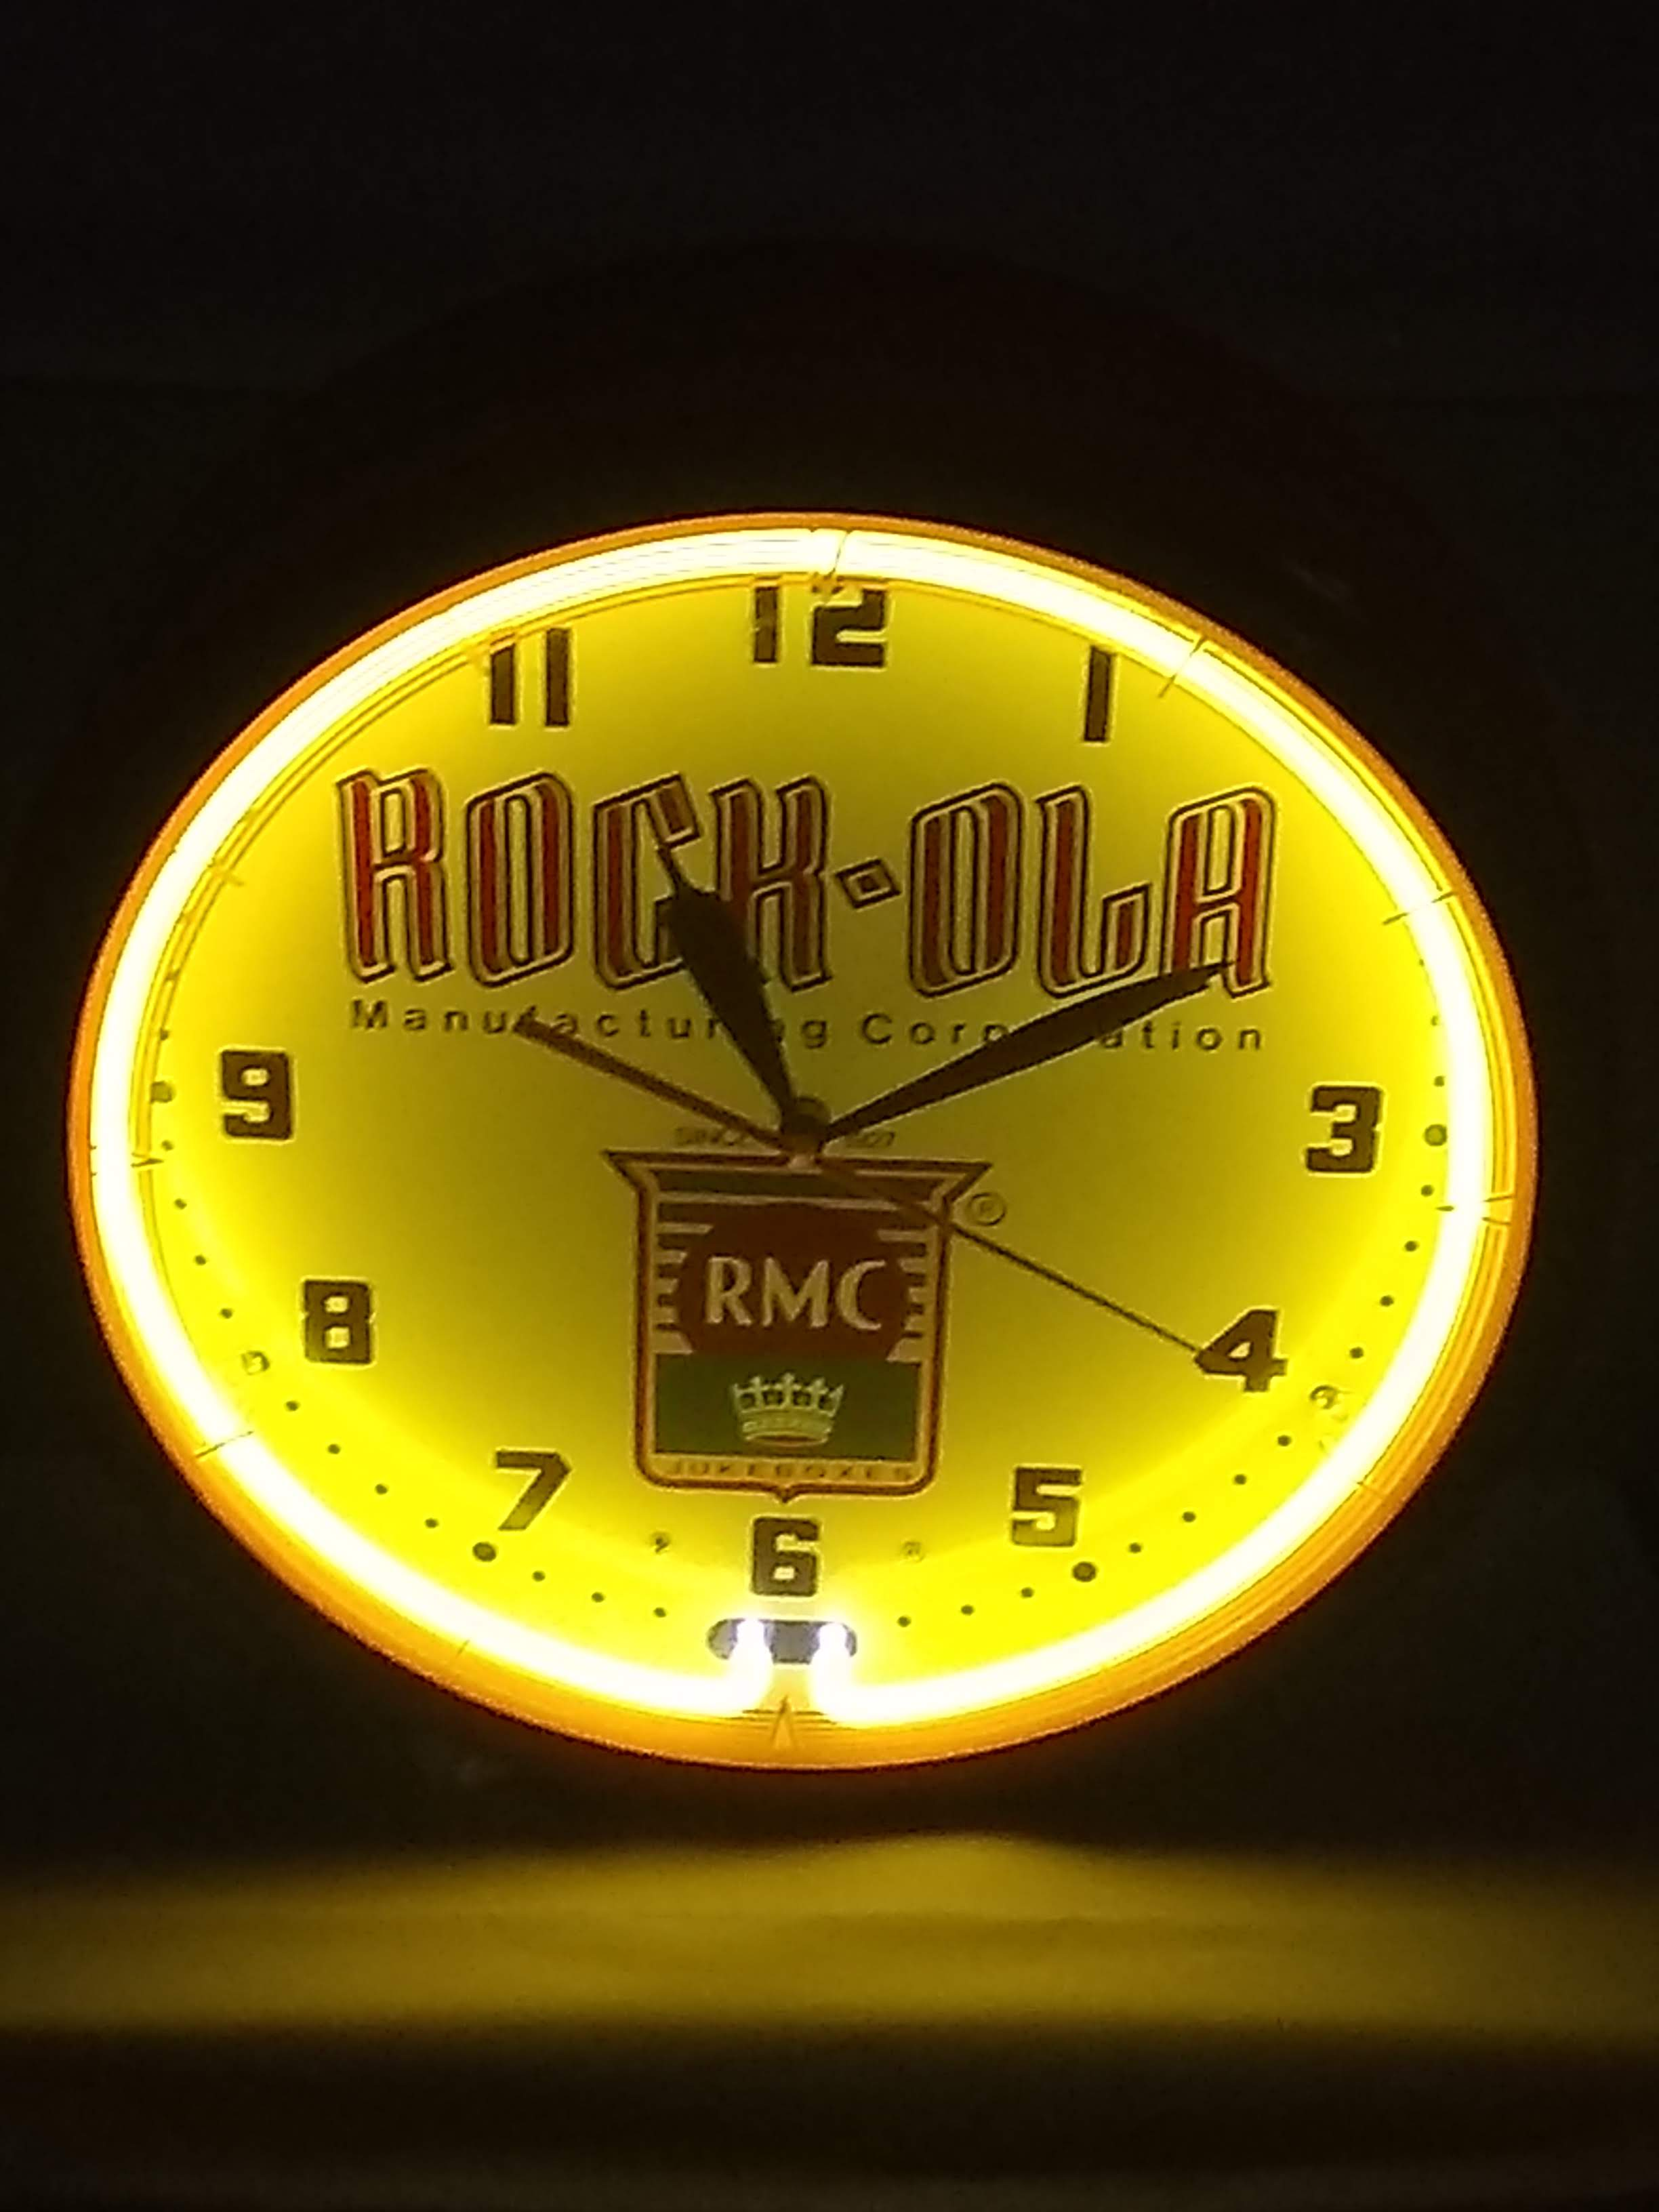 https://0201.nccdn.net/1_2/000/000/092/e84/ADV-Rock-Ola-Clock.jpg